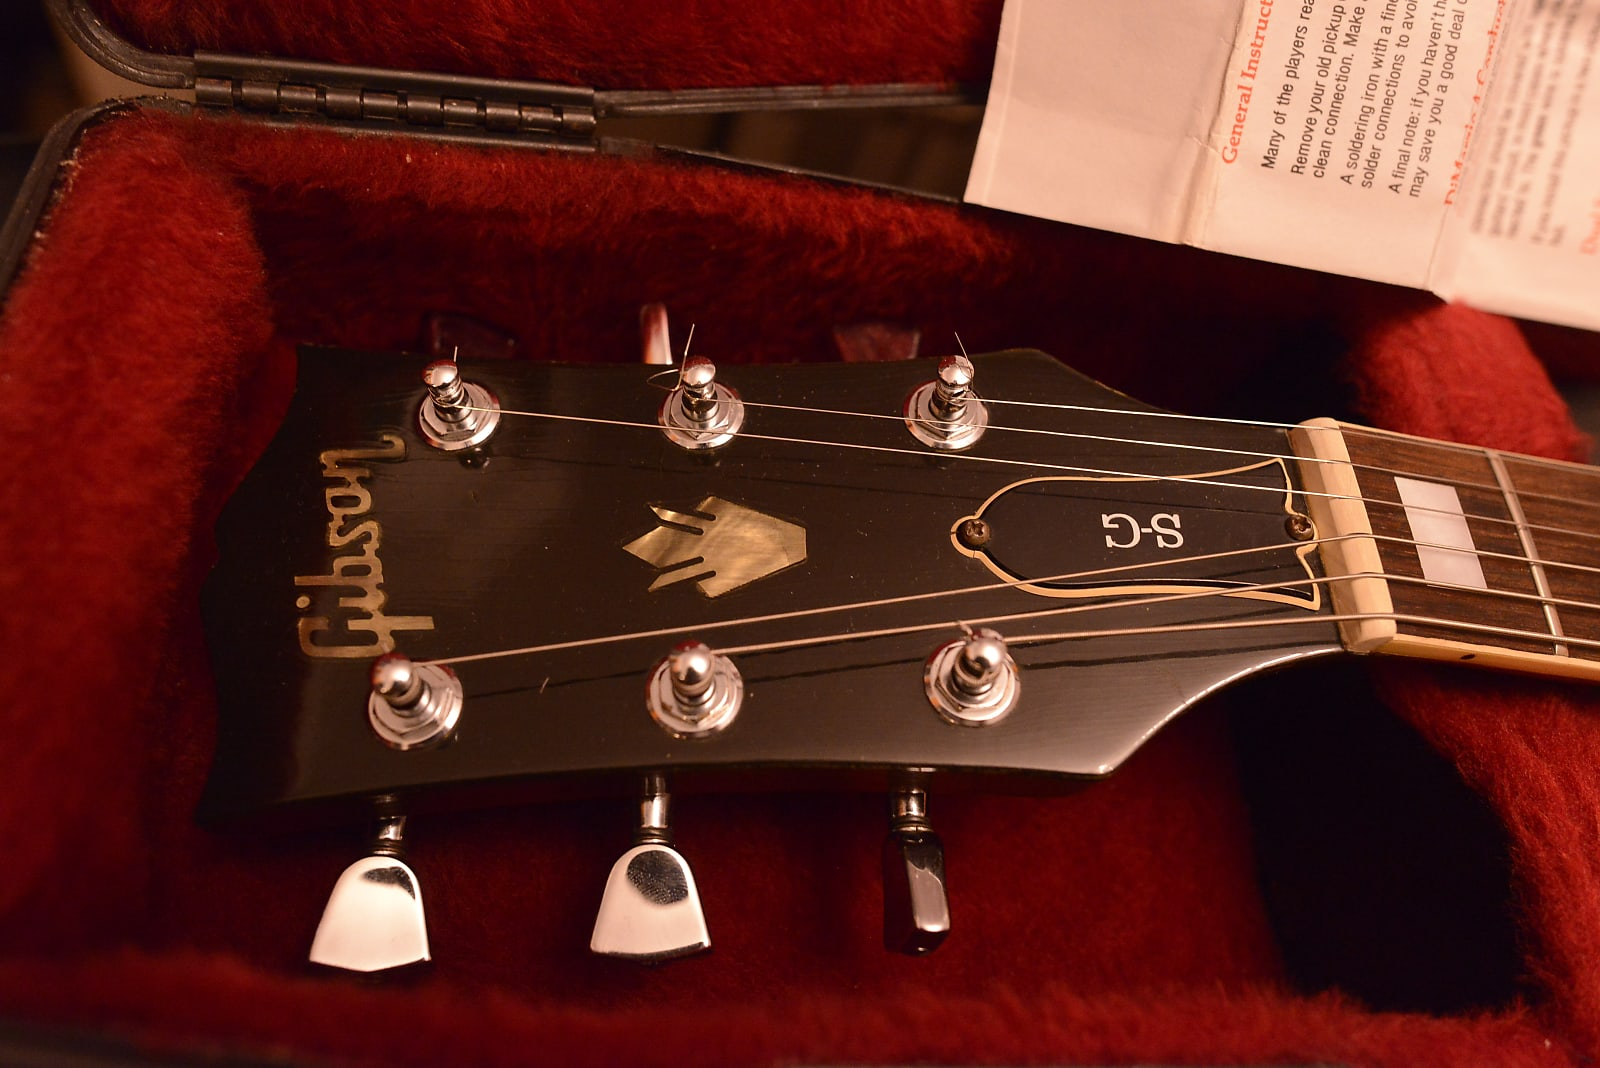 Dating gibson t-top-Pickups